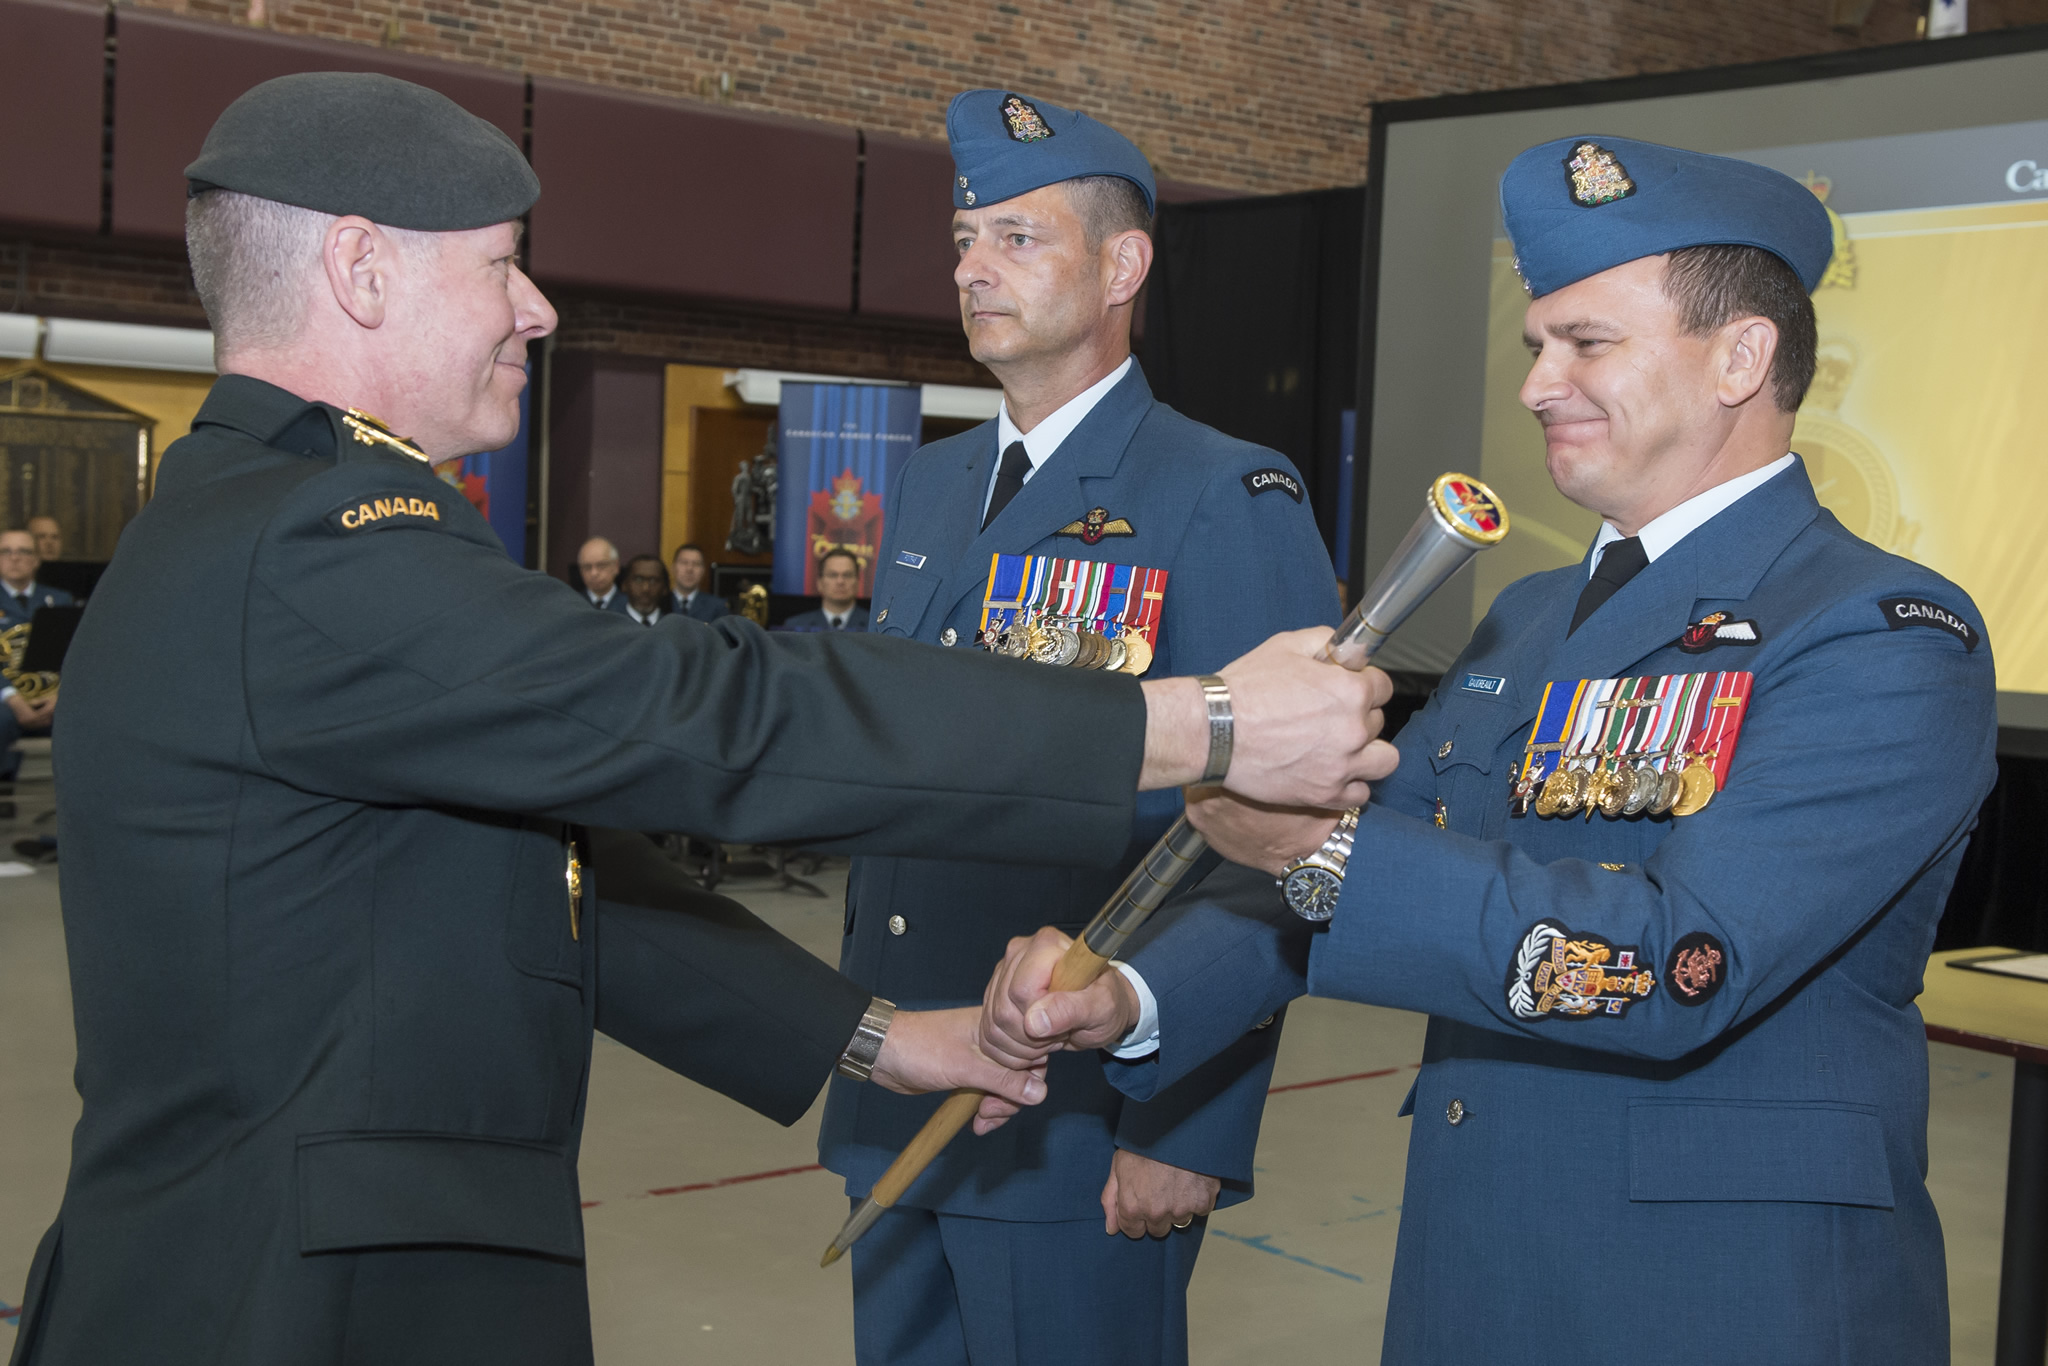 Ottawa, Canada. 2 June 2015 –  Lieutenant-General (LGen) Jonathan Vance (left), Commander of Canadian Joint Operations Command (CJOC), passes the Chief Warrant Officer (CWO) pace stick from CWO Gerard Poitras (Centre), Outgoing Command CWO, to CWO Gaudreault (right), Incoming Command CWO, during the CJOC Change of Command and Change of Appointment Ceremony. (Photo credit: Corporal Lisa Fenton. Canadian Forces Support Unit (Ottawa) Imaging Services ©2015 DND-MDN, Canada)